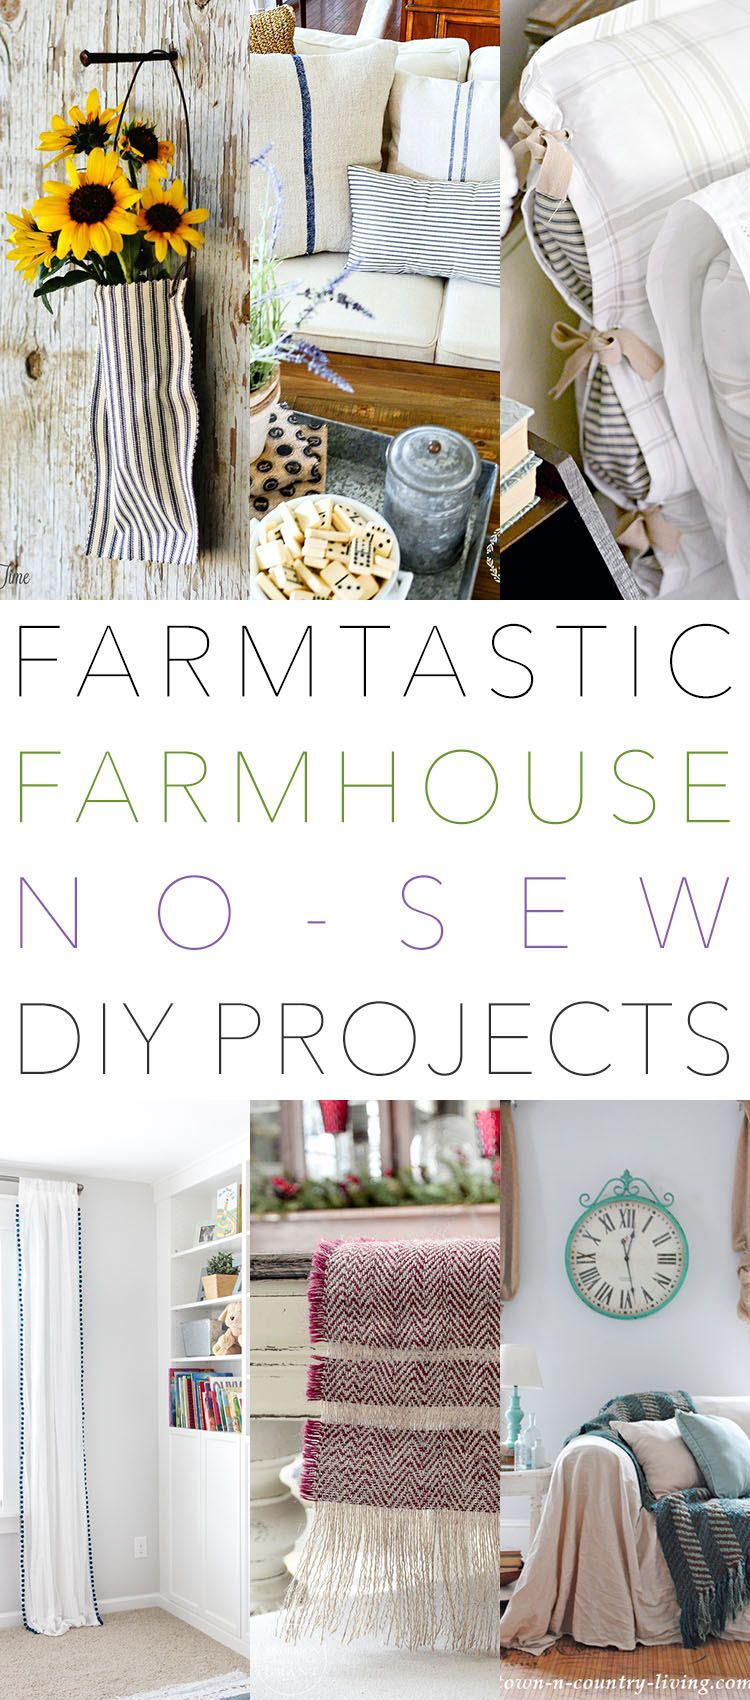 Farmtastic Farmhouse No Sew DIY Projects You Need To Make! (The ...